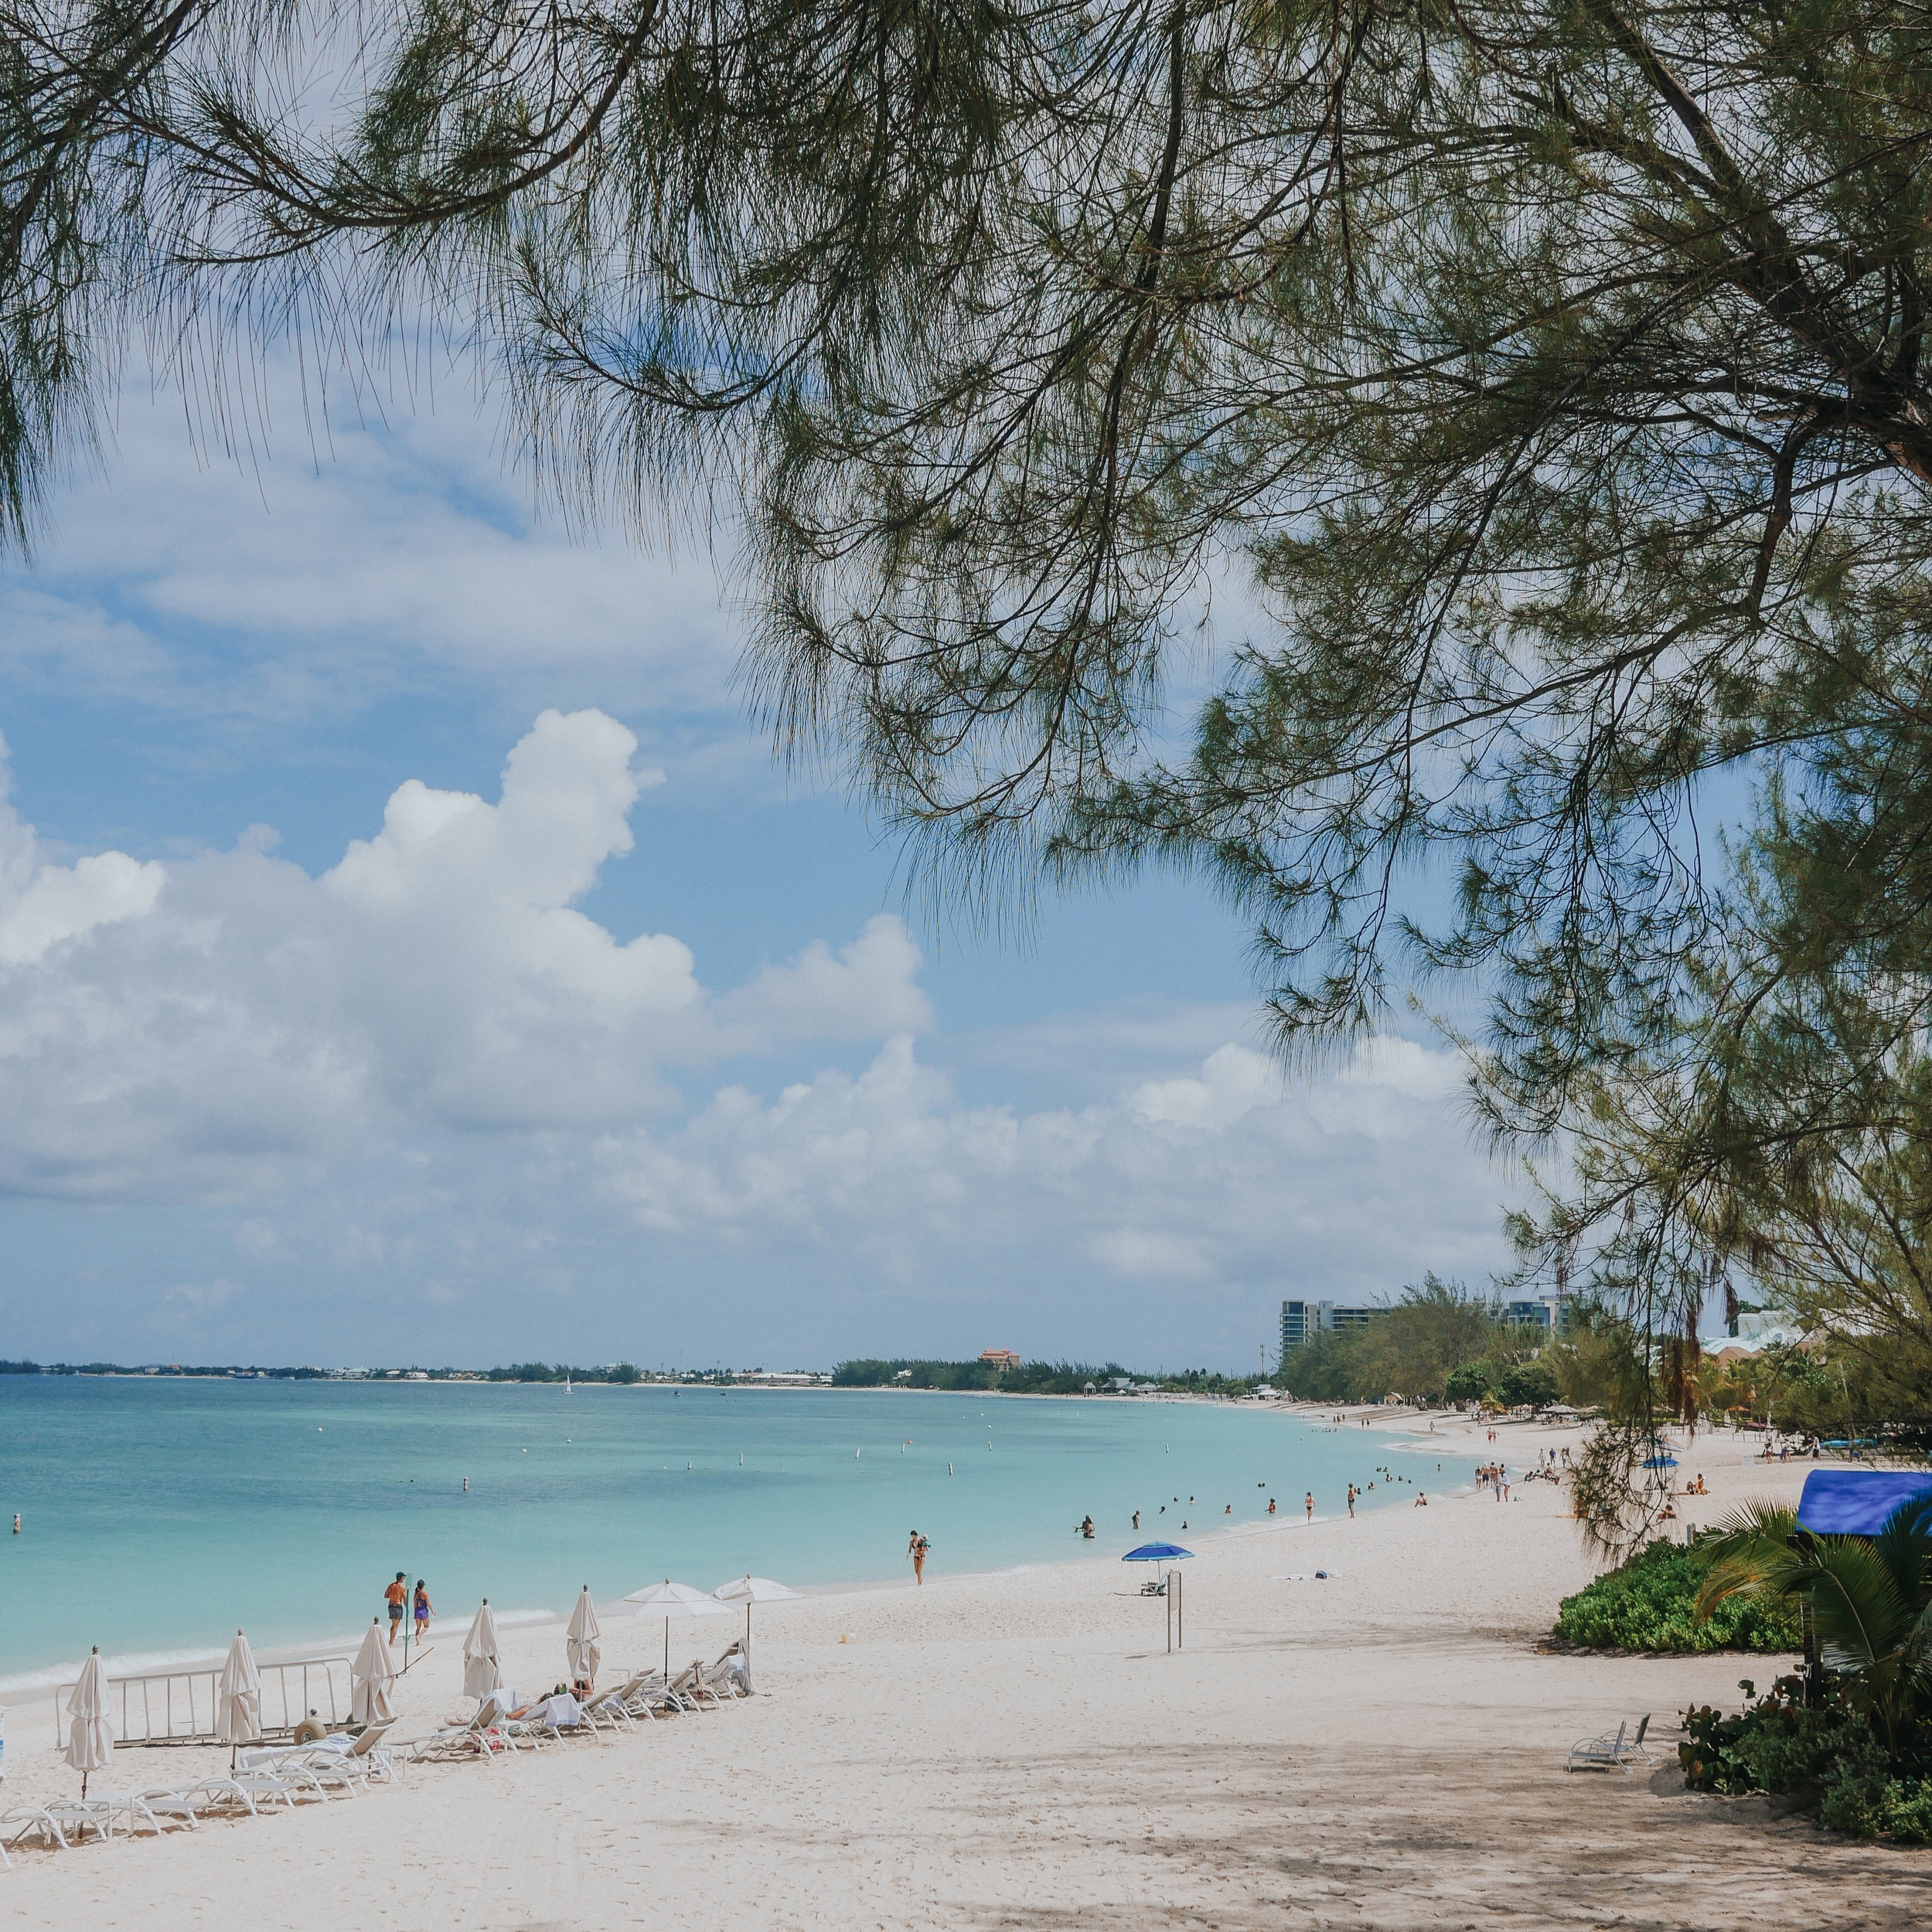 Seven Mile Beach stretches about five miles long and is lined with resorts and vacation homes of all kinds. Our section of the beach was private, made just for hotel guests